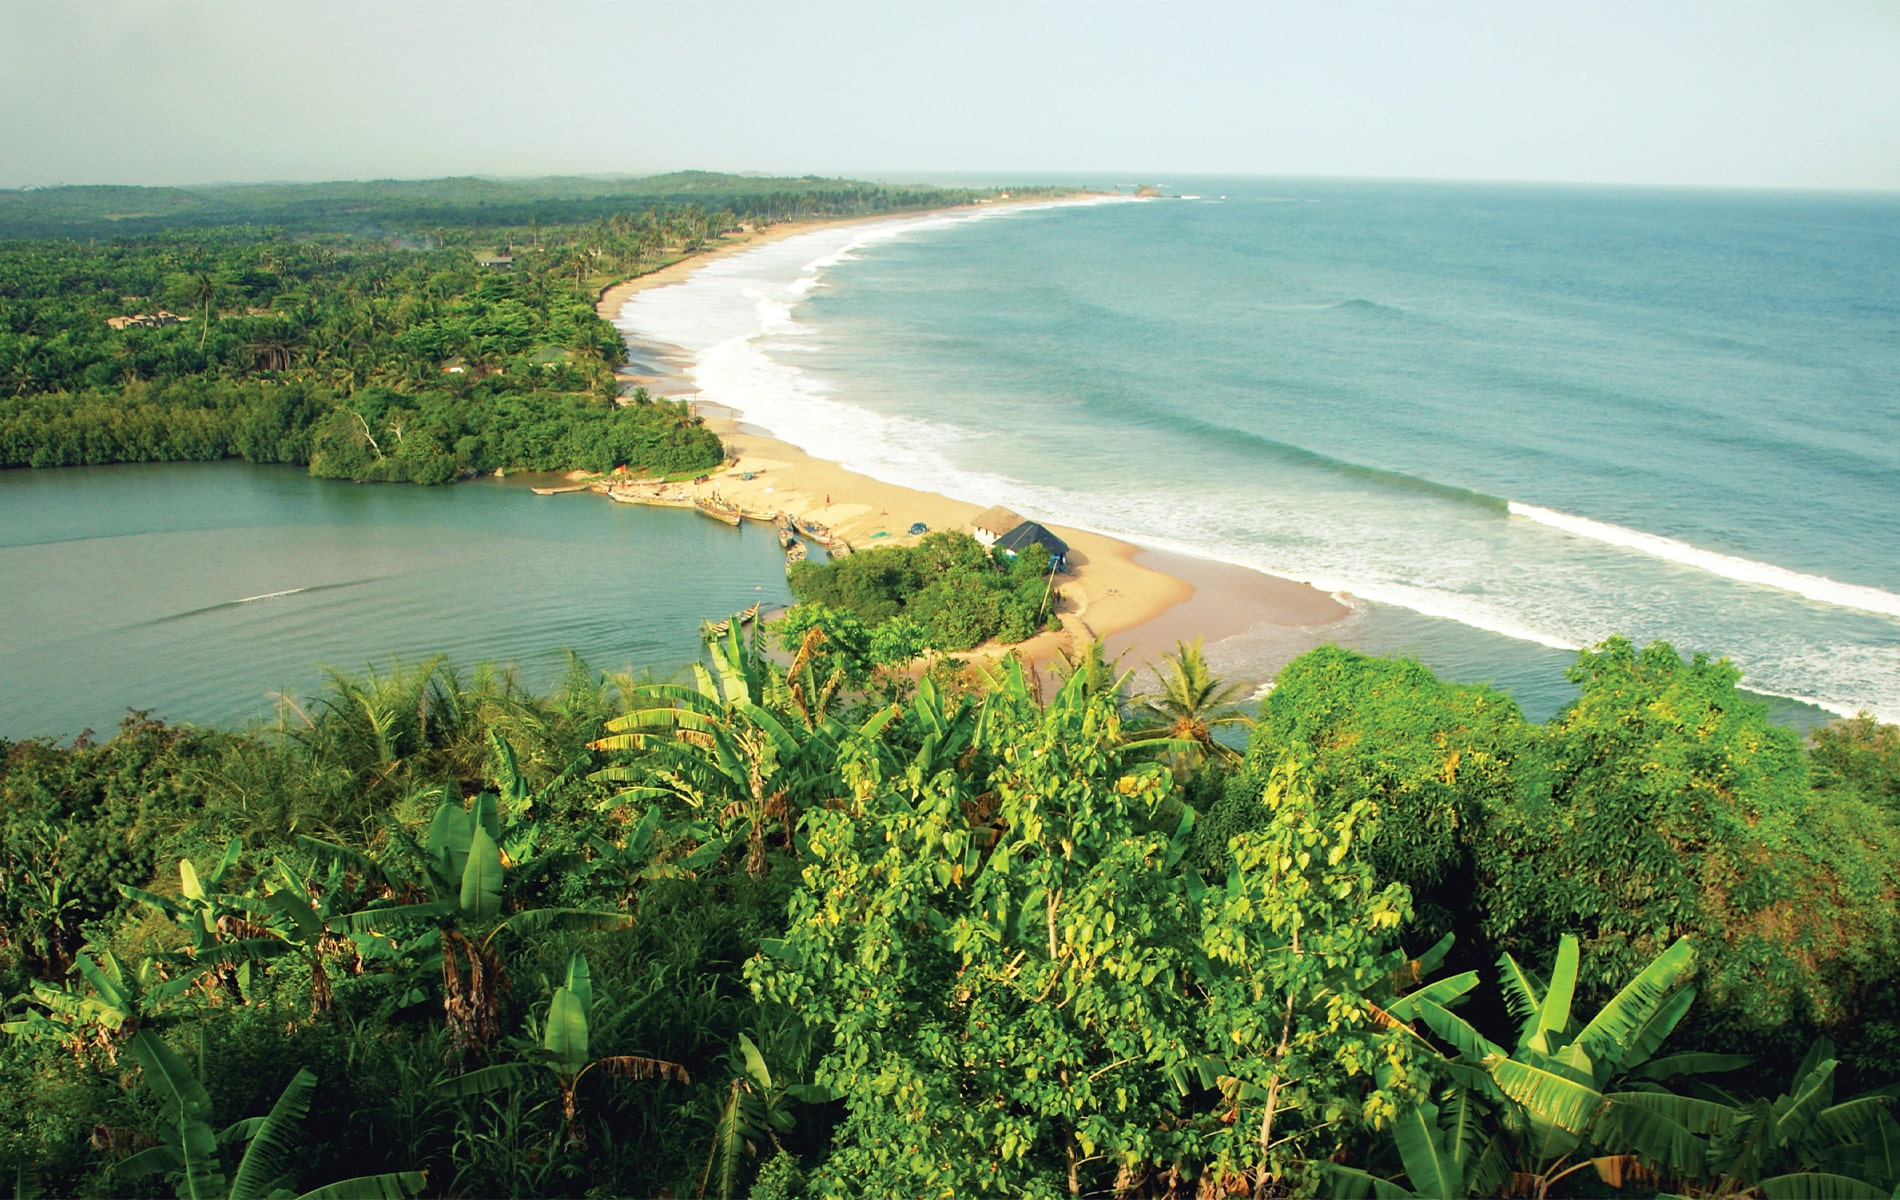 The coastline of Ghana on the Gulf of Guinea, where writer Suzanne Pollak lived for a period during her childhood